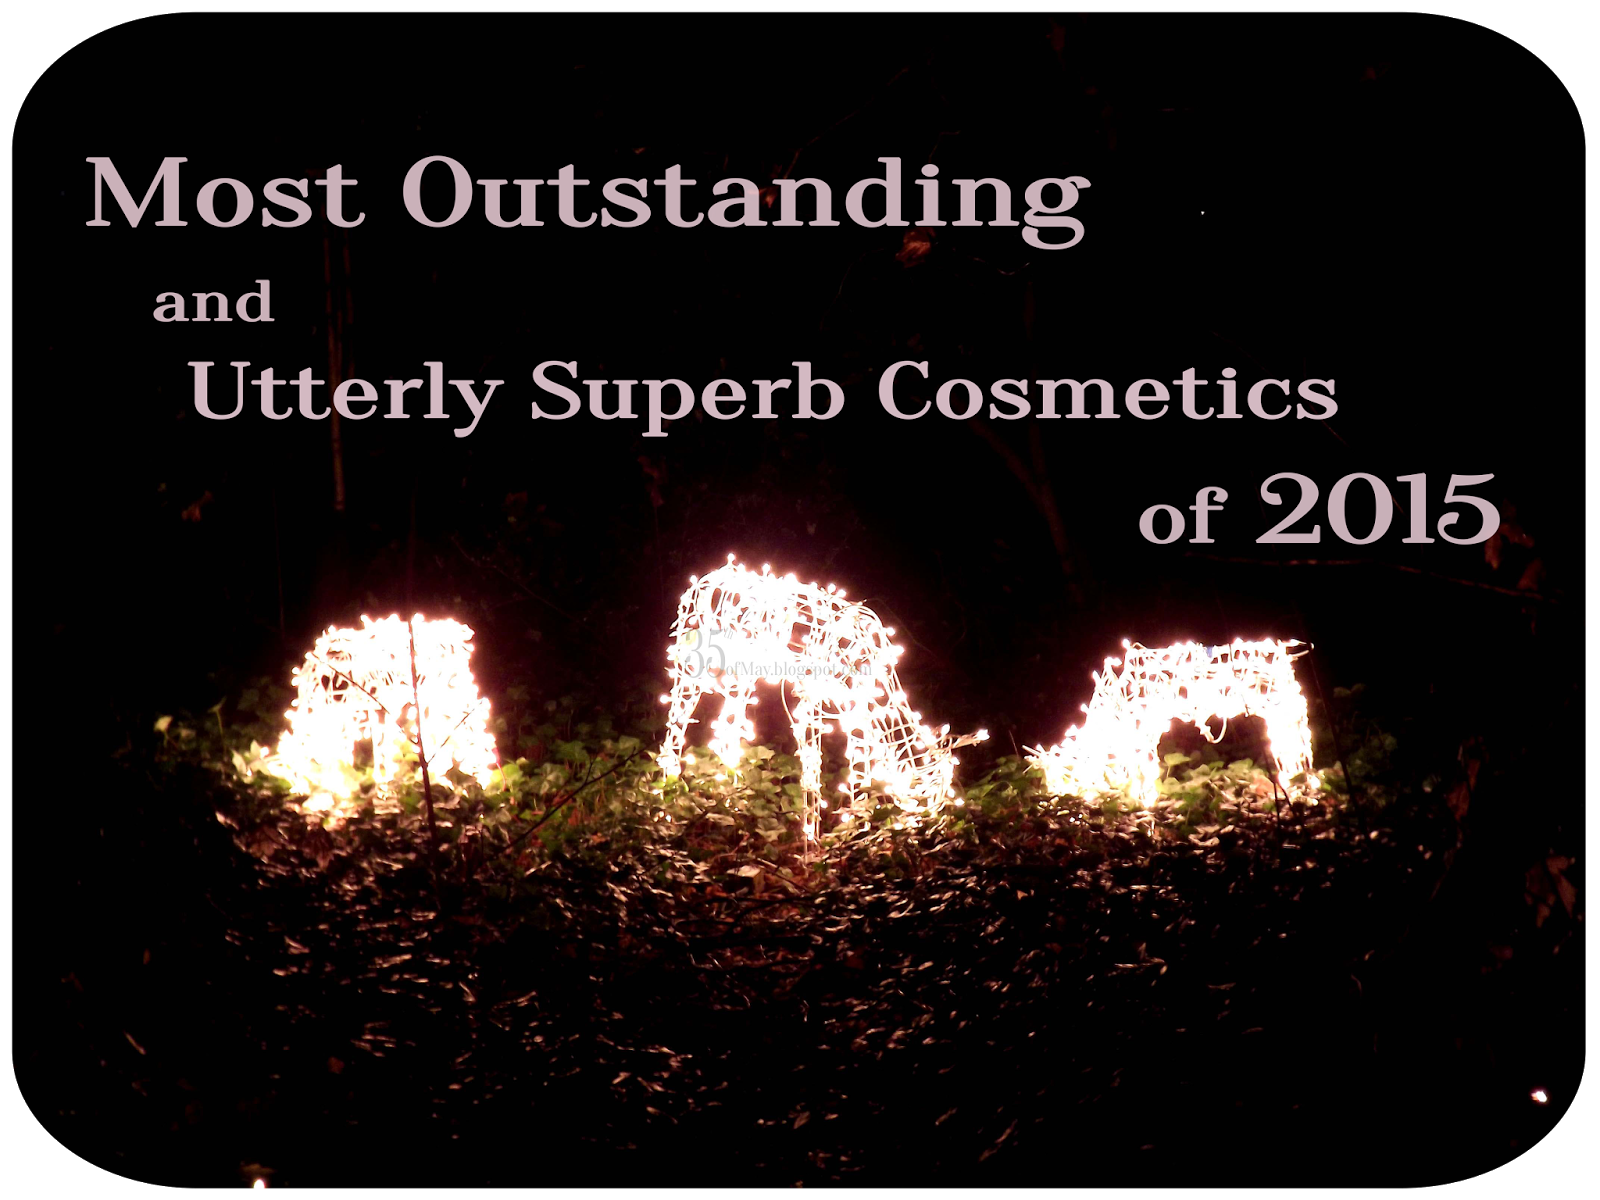 Most Outstanding and Utterly Superb Cosmetics of 2015